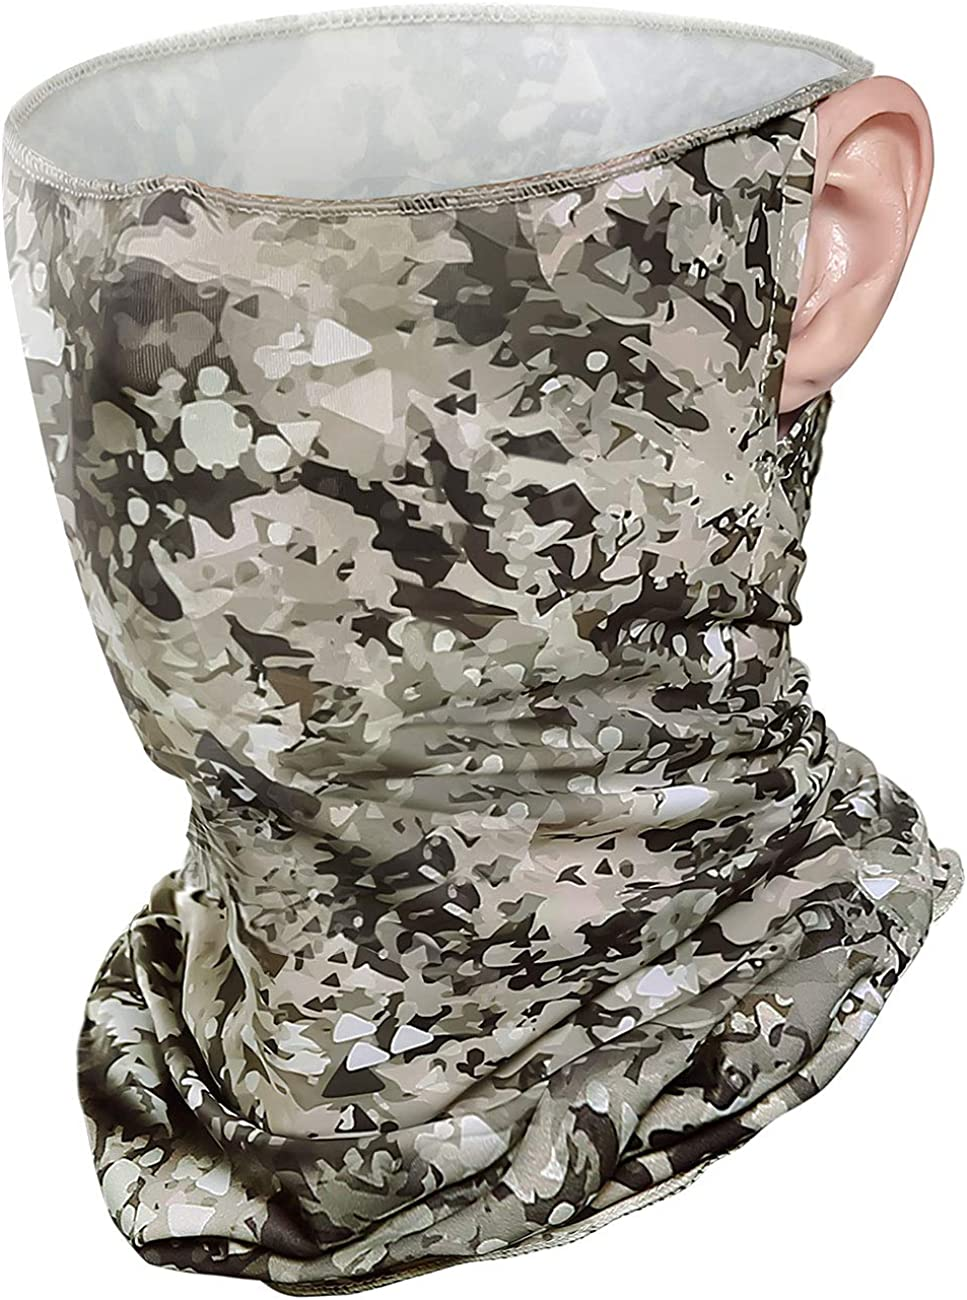 Summer UV Protection Face-Covering with Ear Loops, Cooling Neck Gaiter Tube-Mask for Cycling Fishing